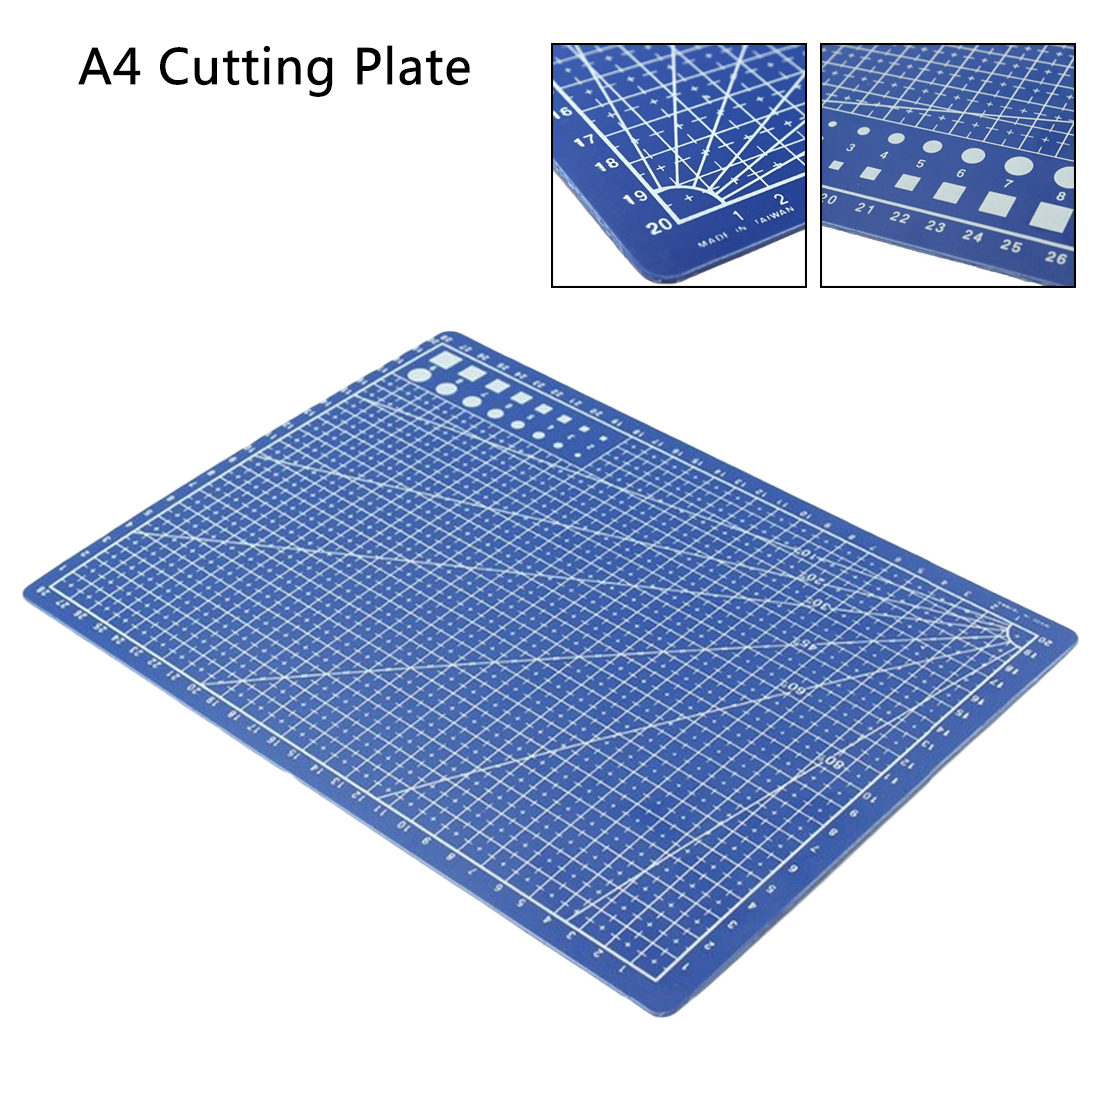 Lightweight 1pc A4 Double-side Cutting Plate Grid Lines Self Healing Cutting Mat Craft Card Paper Board For Office For School